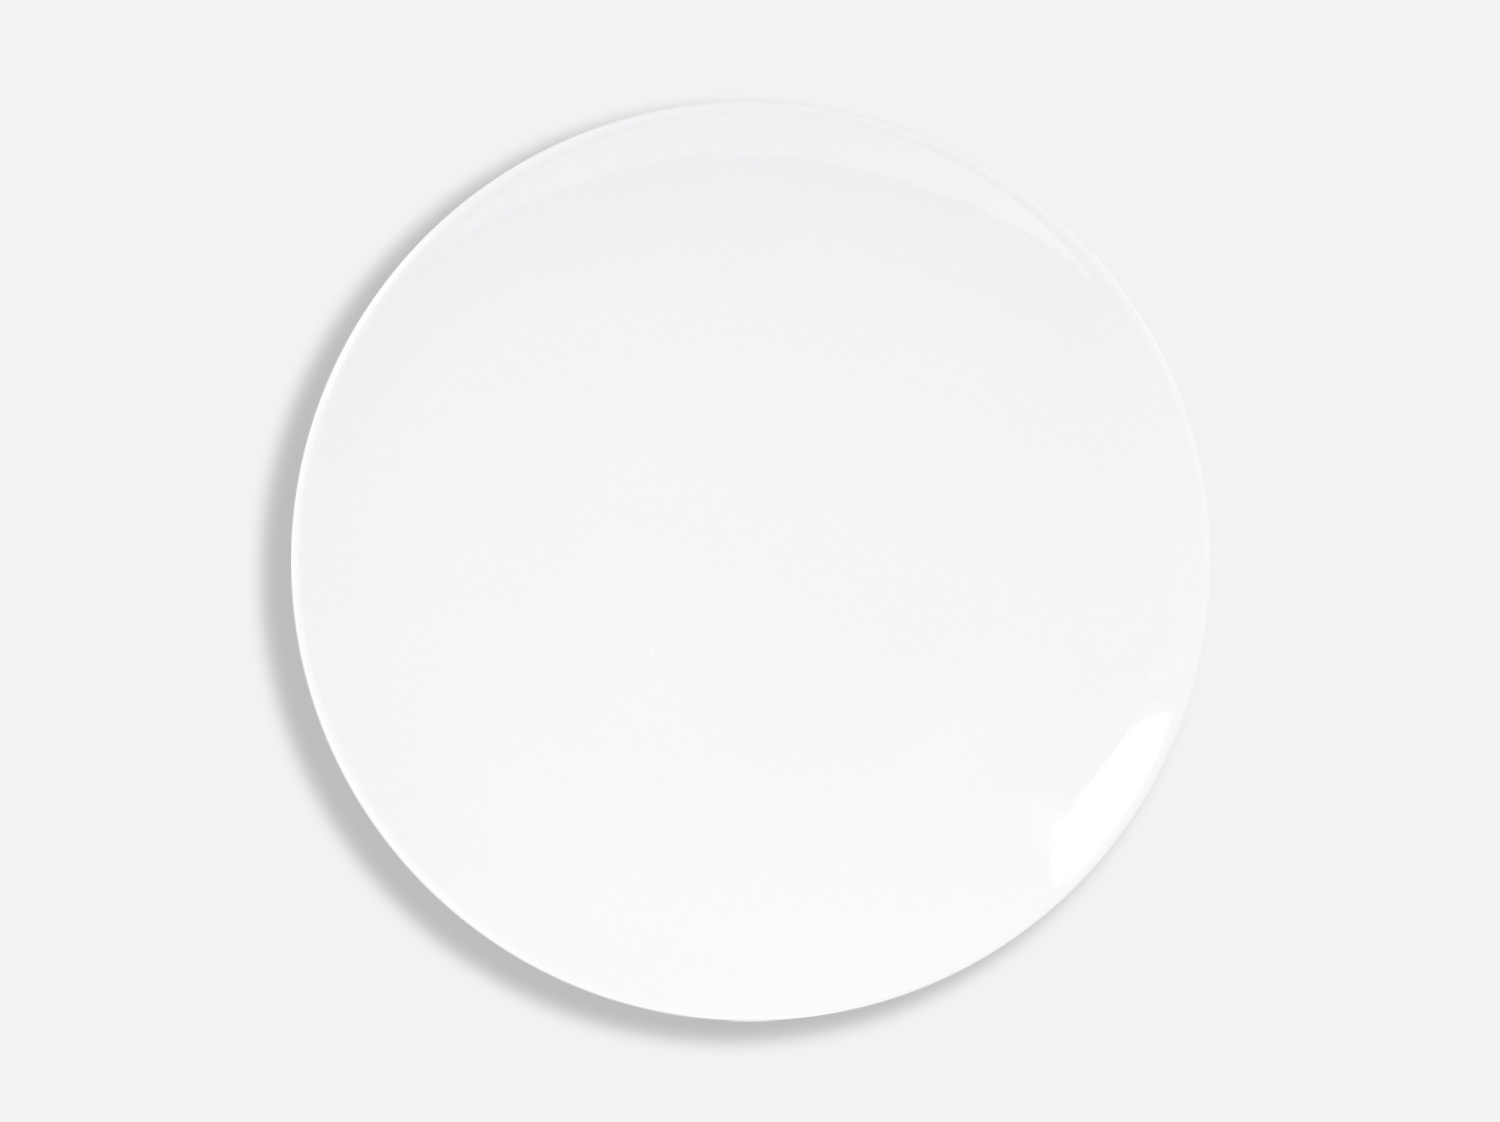 Assiette coupe 29,6 cm en porcelaine de la collection DOMUS BLANC Bernardaud